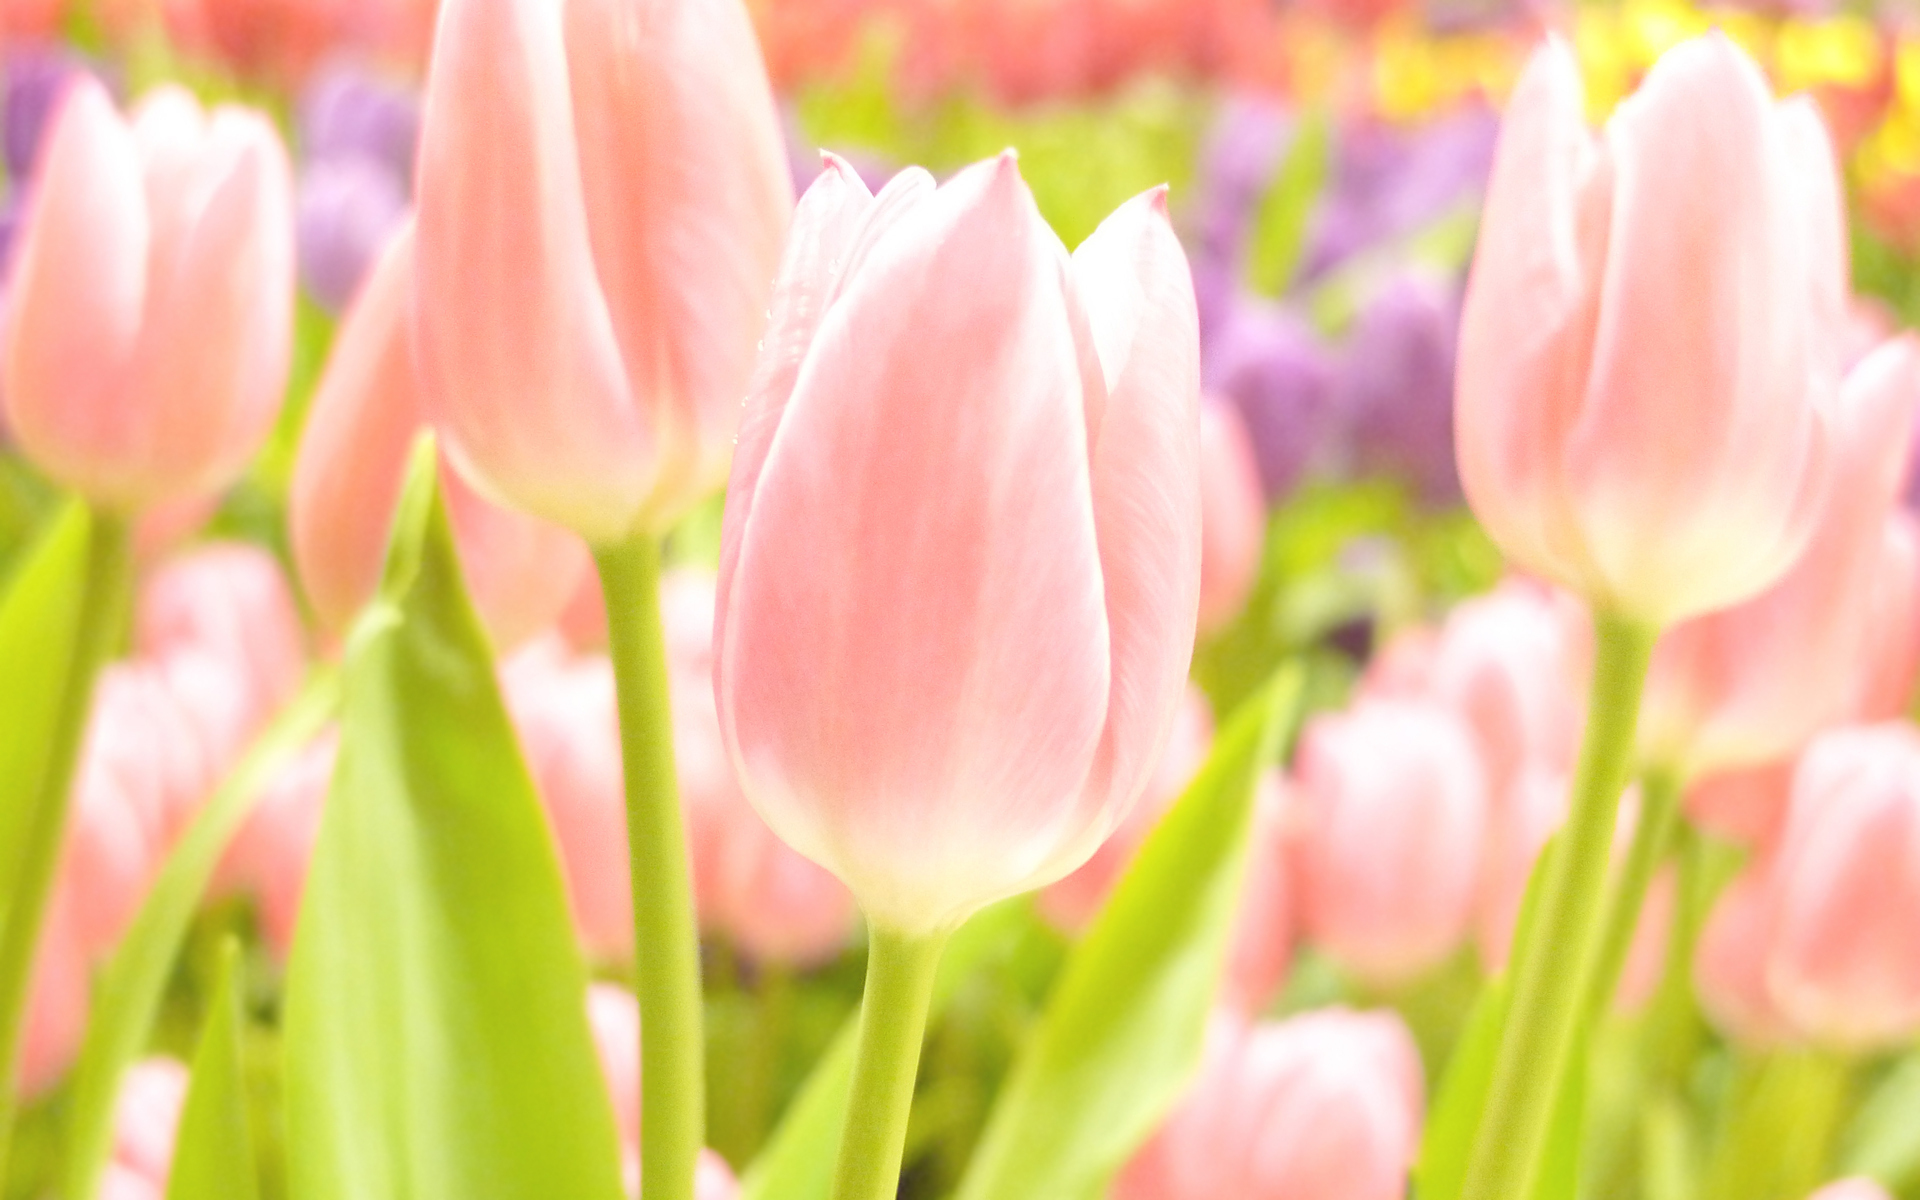 Pink Tulips Bastogne Desktop Widescreen Images Free Downlad Images